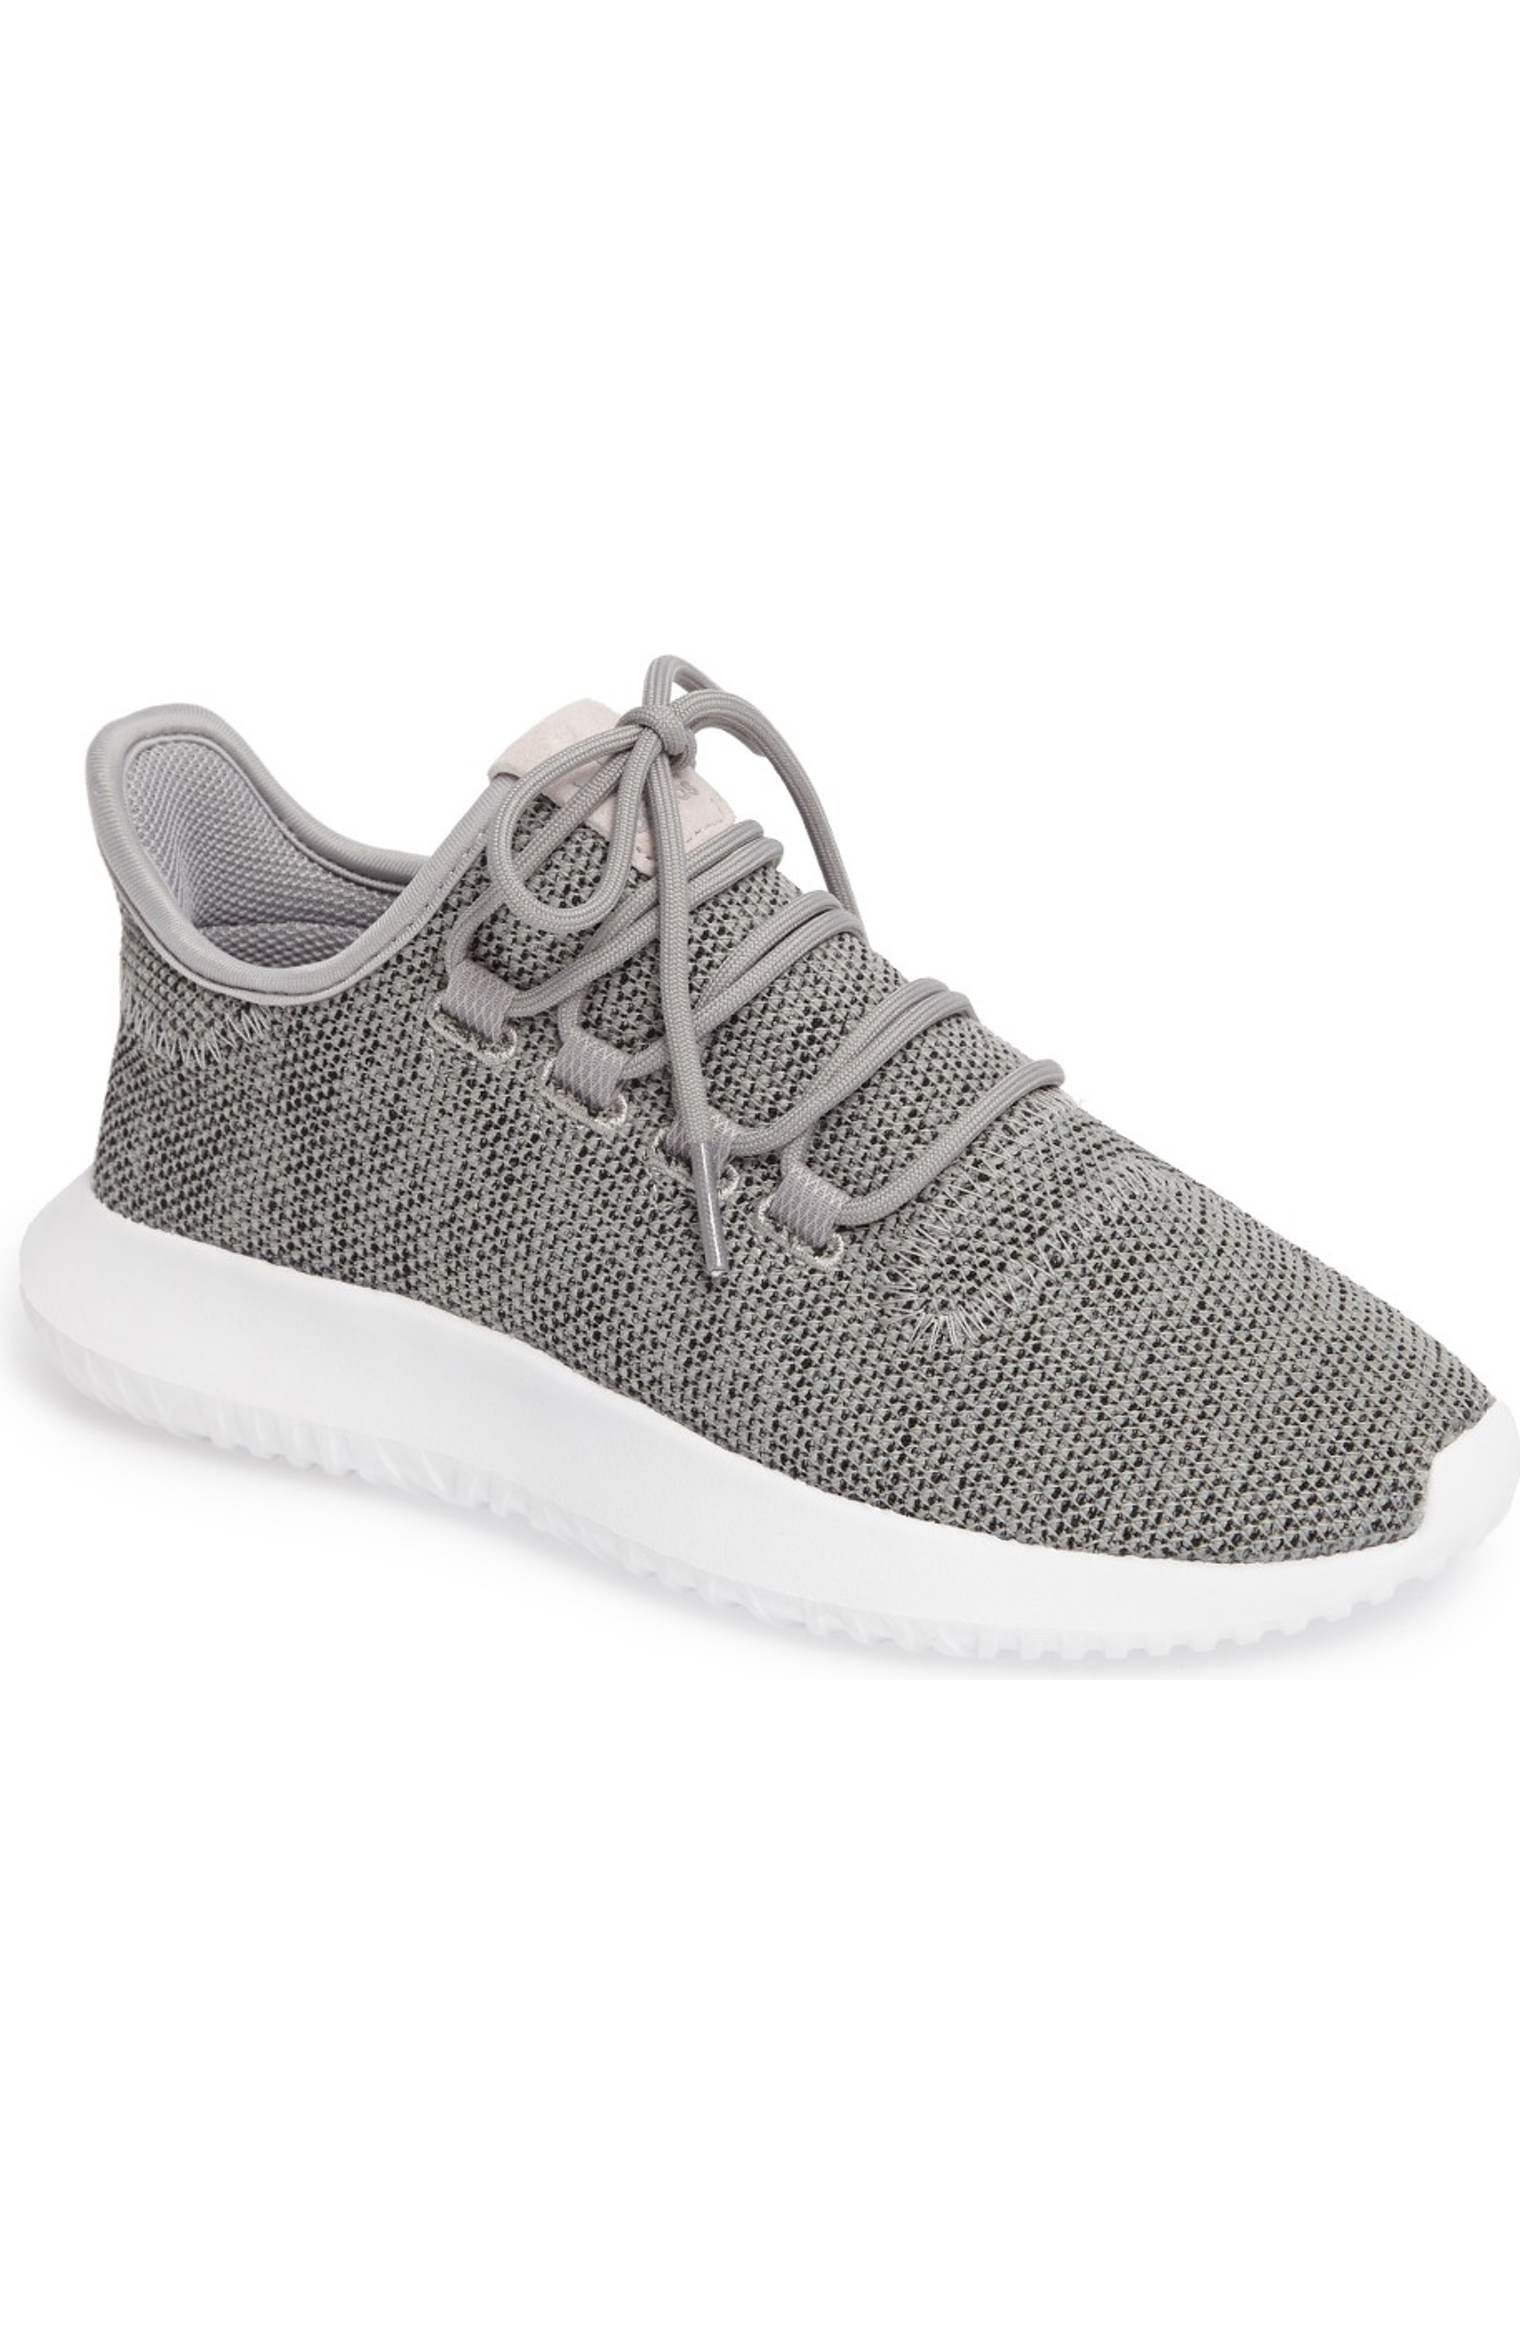 a251afab15d Main Image - adidas Tubular Shadow Sneaker (Women) https   tmblr.